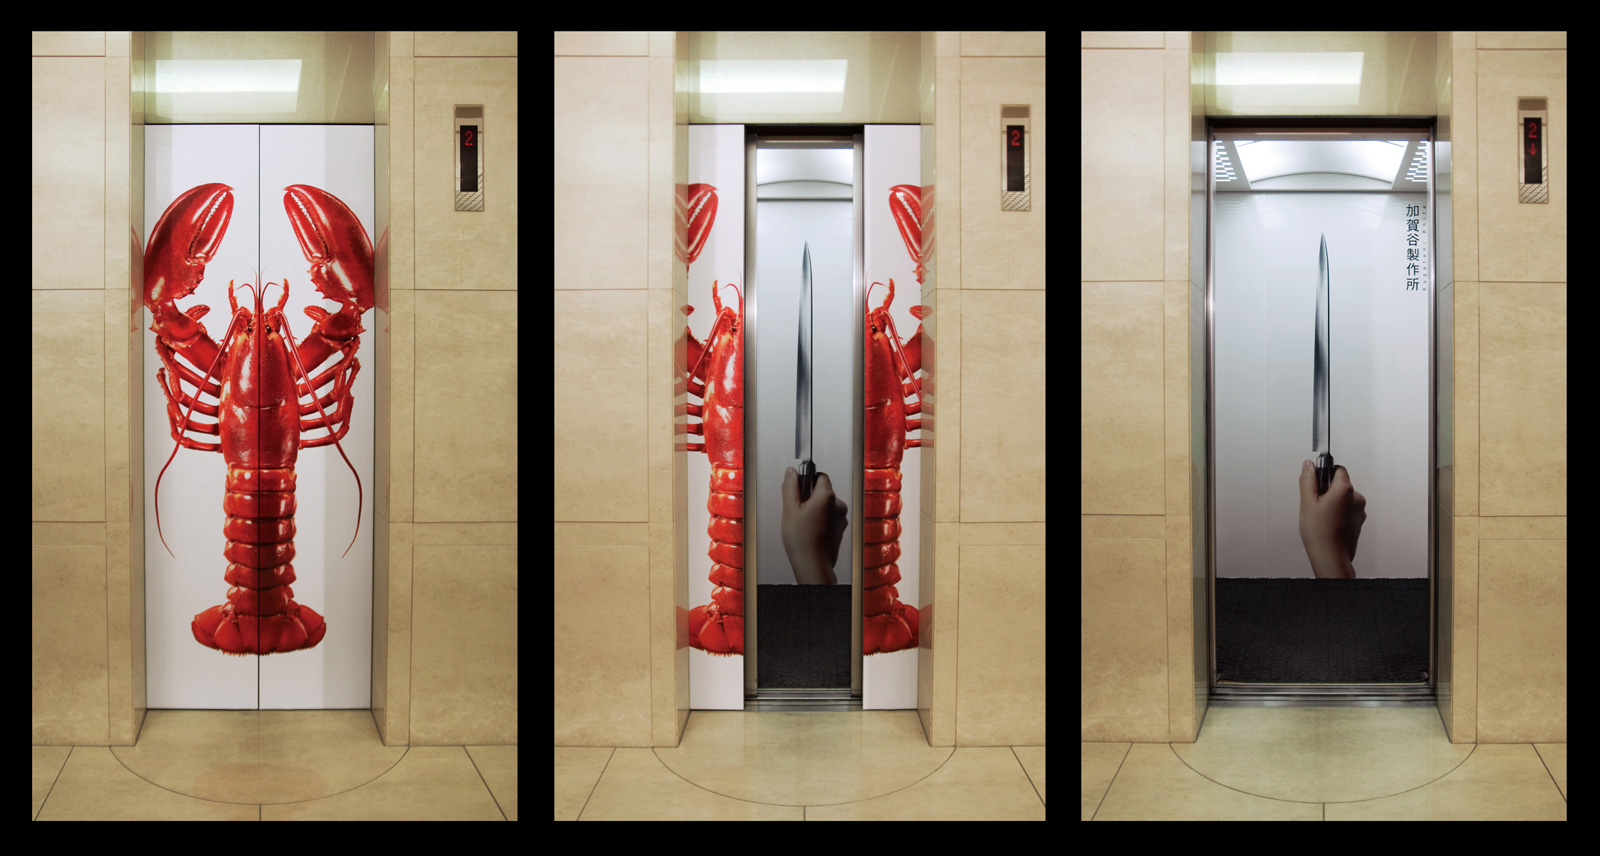 Kagatani Knife: Top 27 Creative Elevator Advertisements